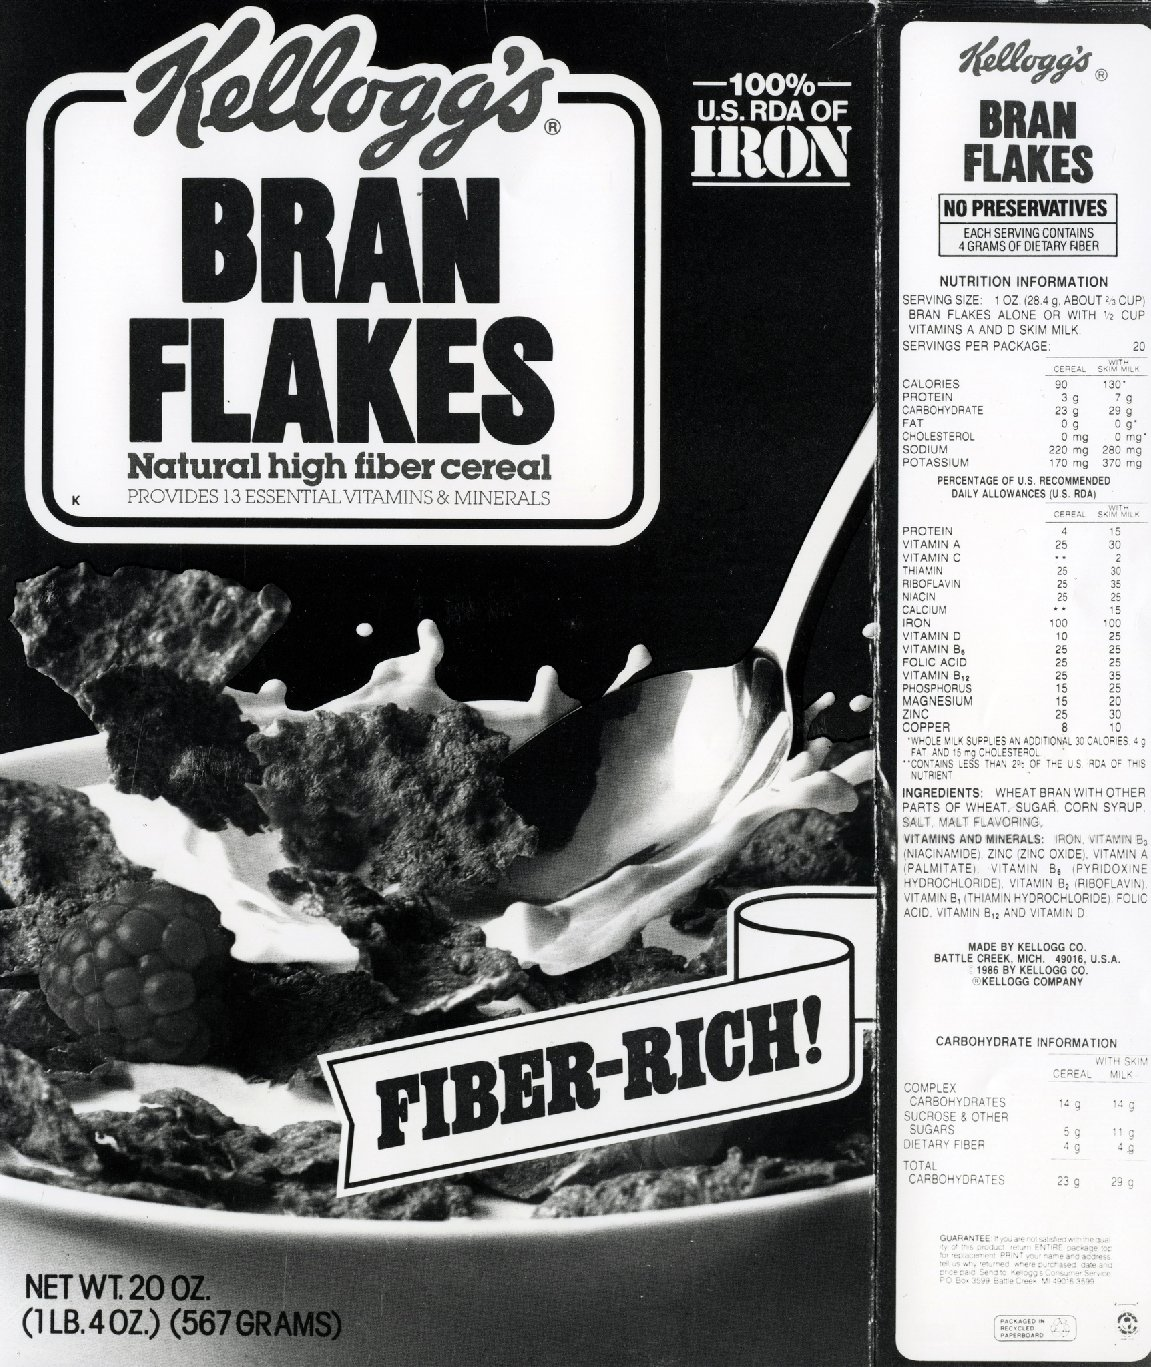 This 1986 Kellogg's Bran Flakes box lists many attributes: 100% RDA of Iron, Fiber Rich, No preservatives, natural high fiber cereal, provides 13 essential vitamins and minerals. Under the 1990 Nutrition Labeling and Education Act, many confusing label terms began to be standardized. Photo: US Food and Drug Administration/Flickr